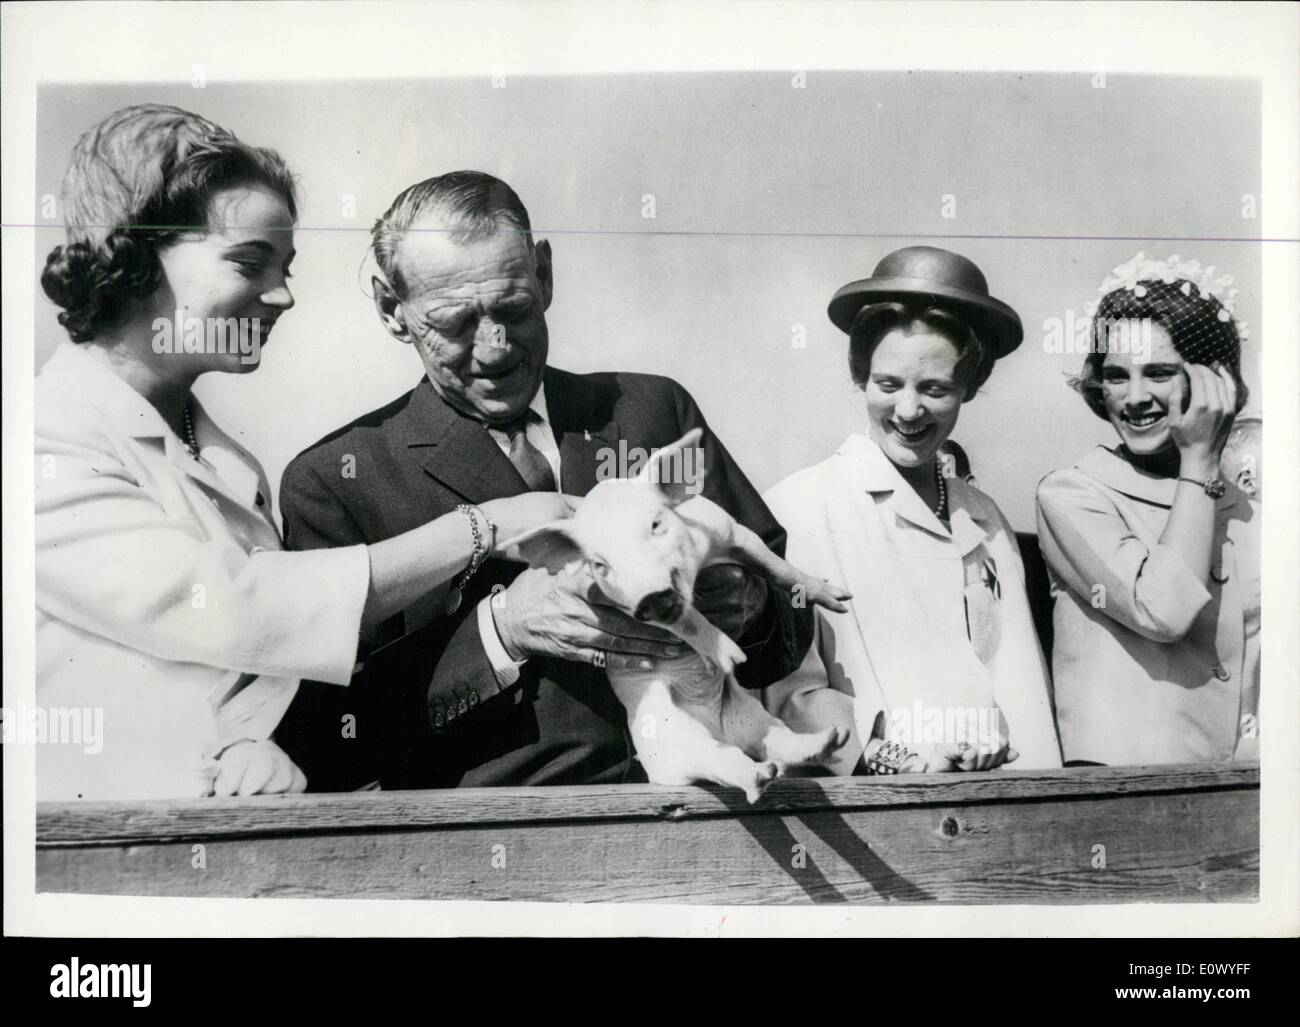 Jun. 23, 1964 - 23-6-64 This little piggy met the King. King Frederik of Denmark accompanied by Queen Ingrid and their daughters the Princesses Margrethe, Benedikte and Anne-Marie paid a visit to the Cattle Show at Bellahoej in Copenhagen over the weekend, where they saw the latest developments in Danish agriculture and machinery. Photo Shows: King Frederik is introduced to a little piglet at the Agricultural Show, watched by (left to right) Princess Benedikte, and Princesses Margrethe and Anne-Marie who were obviously highly amuse about the whole affair. - Stock Image